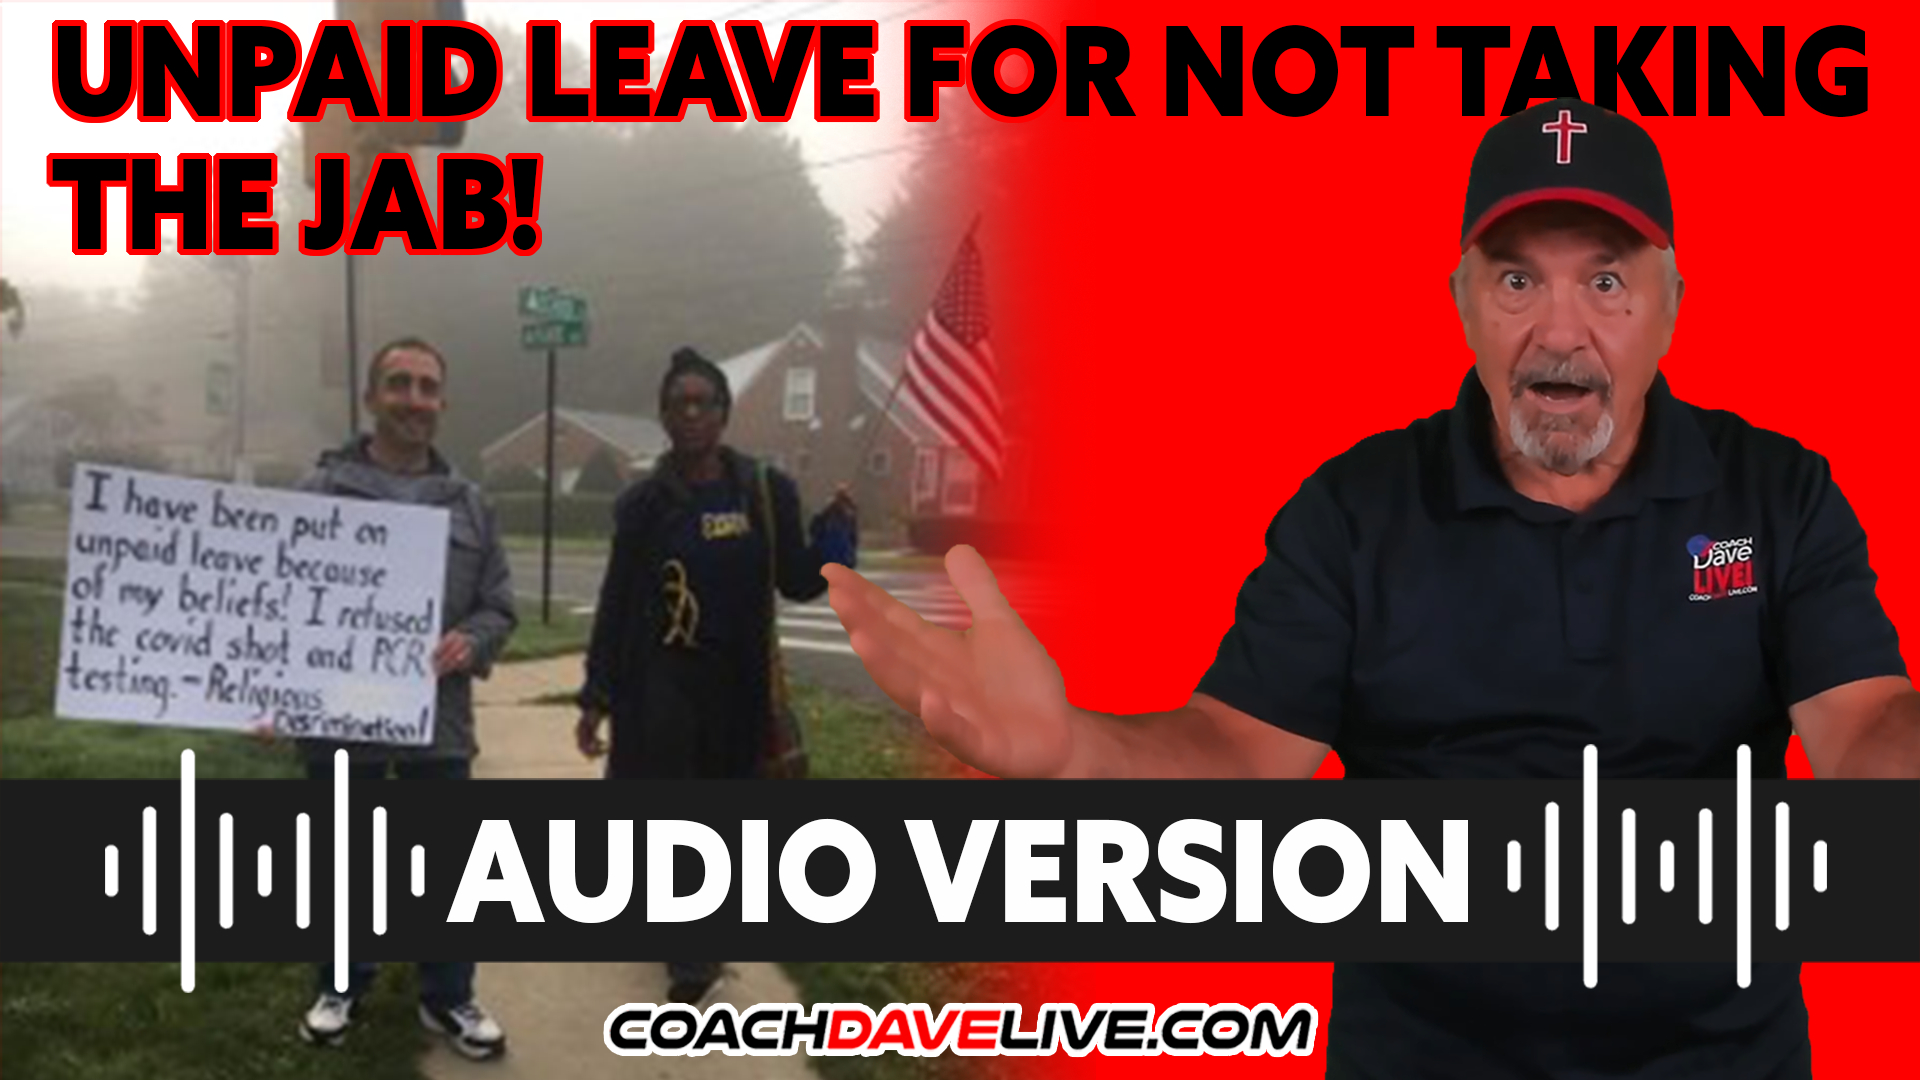 Coach Dave LIVE | 10-12-2021 | UNPAID LEAVE FOR NOT TAKING THE JAB! - AUDIO ONLY